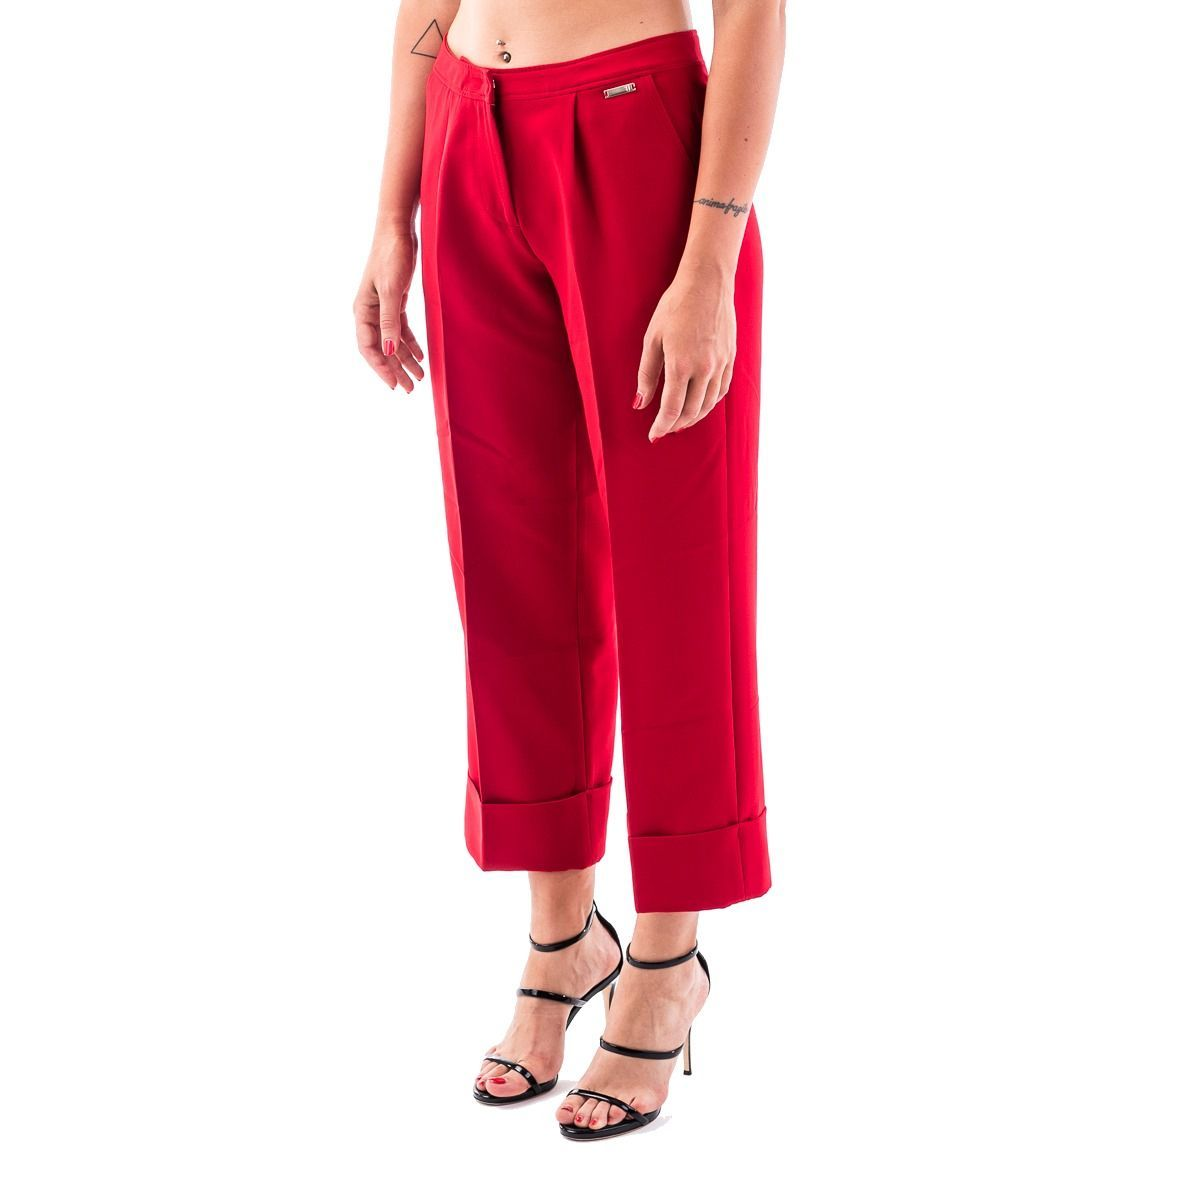 TRUSSARDI WOMEN'S 56P001591T002800R170 RED POLYESTER PANTS